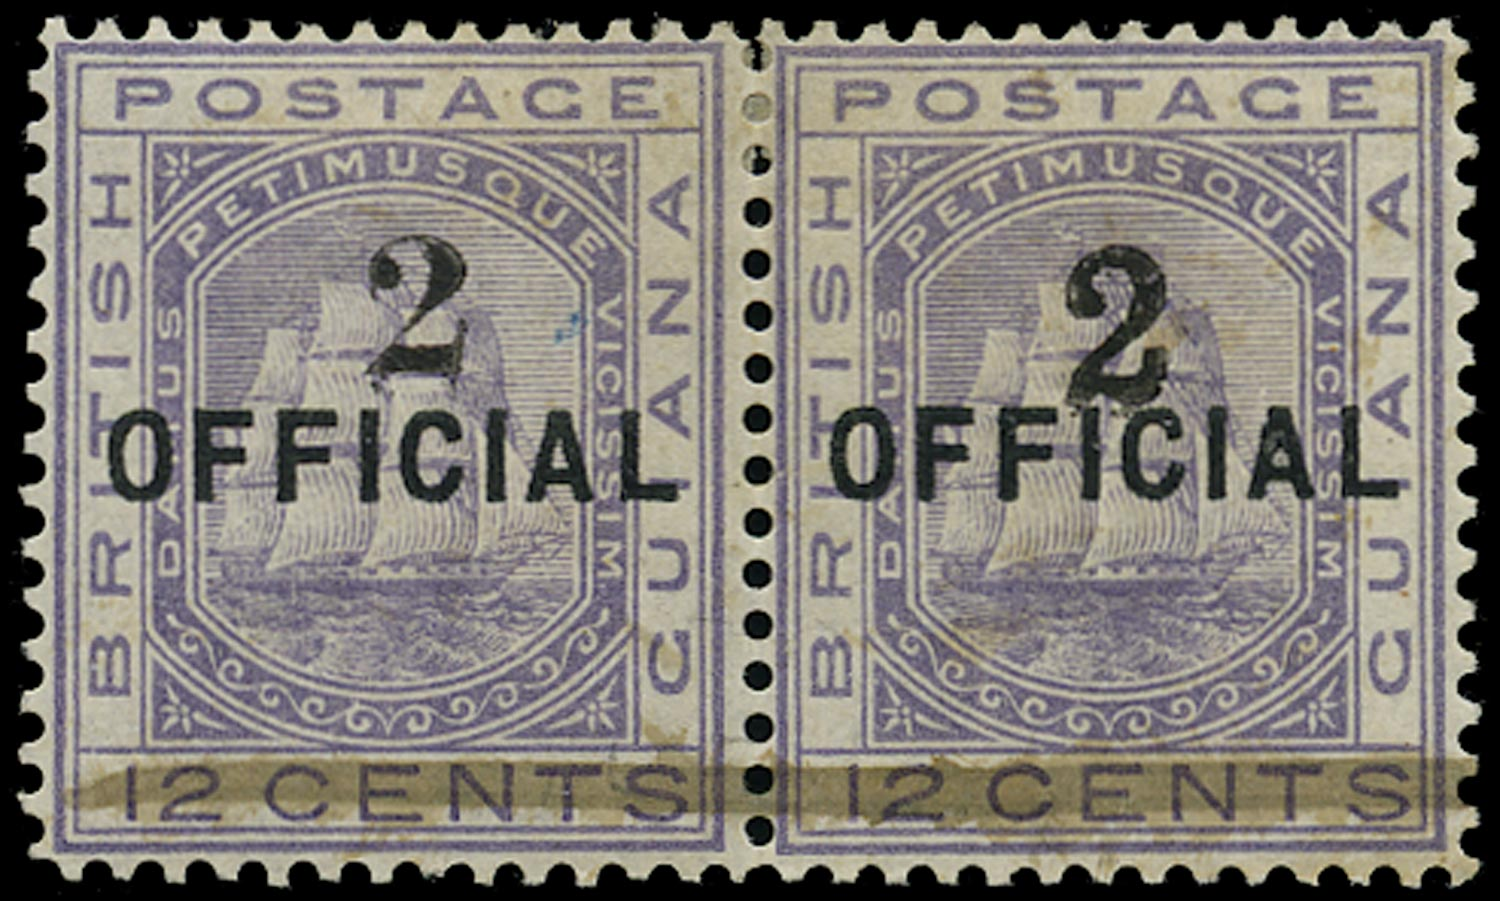 BRITISH GUIANA 1881  SG155a Mint 2 on 12c pale violet types 23 and 24 se-tenant